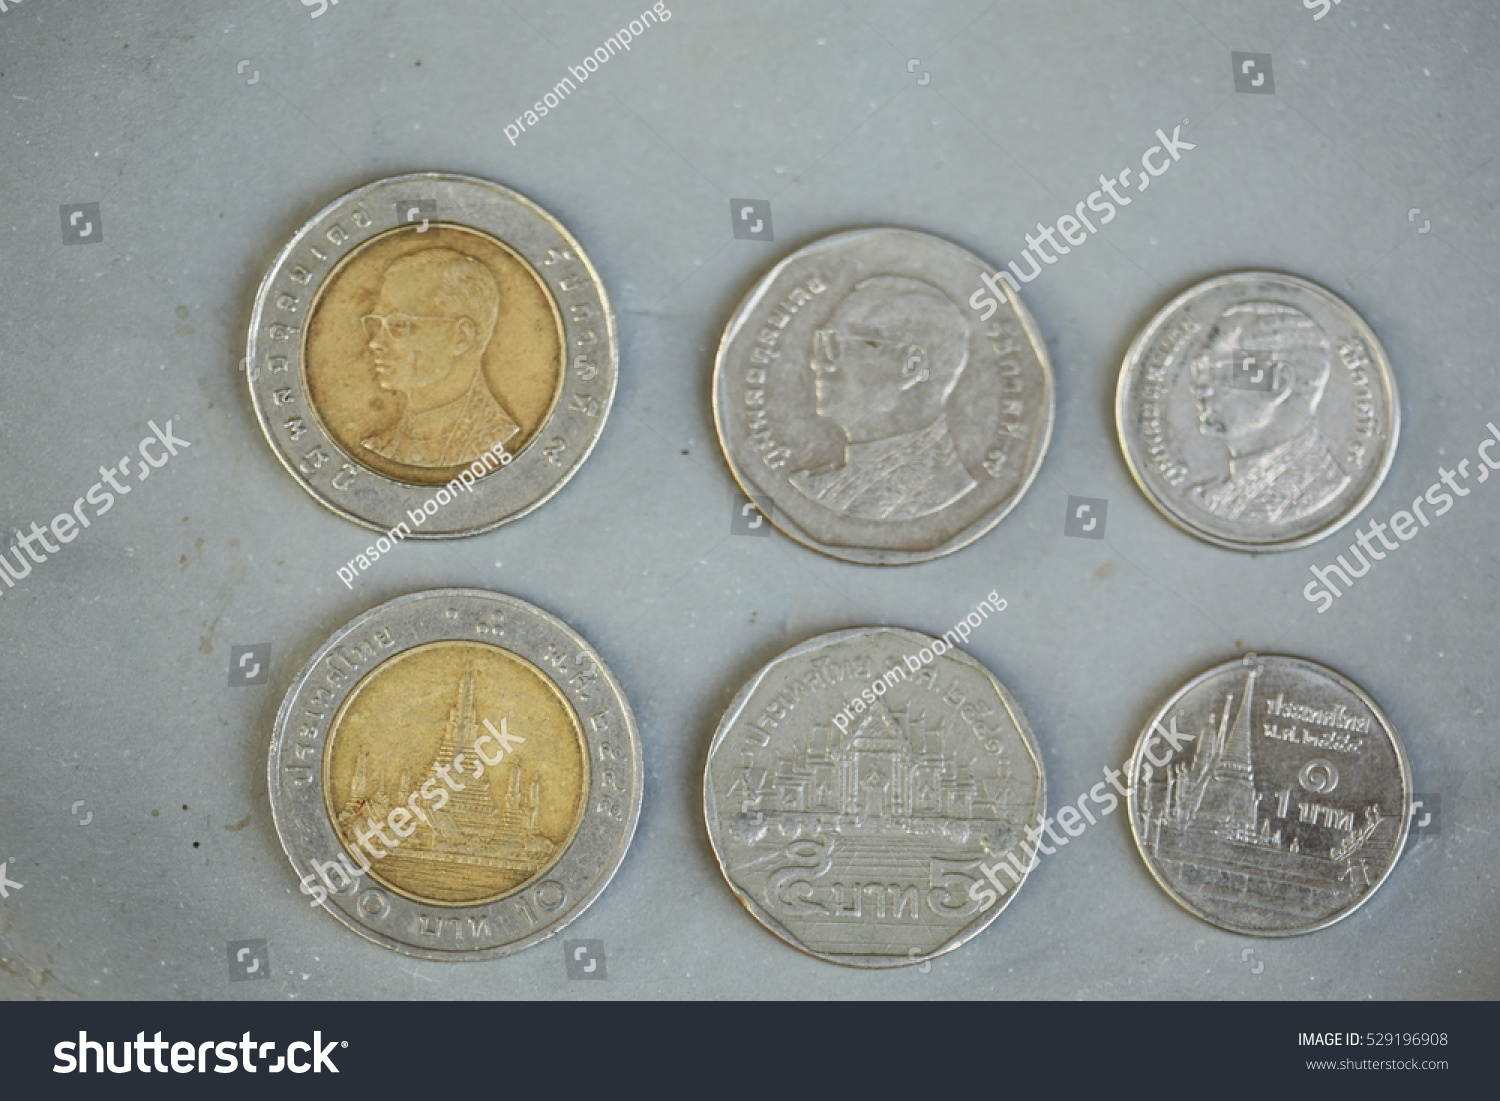 Thai Baht Silver Coins Front And Back Stock Photo Shutterstock